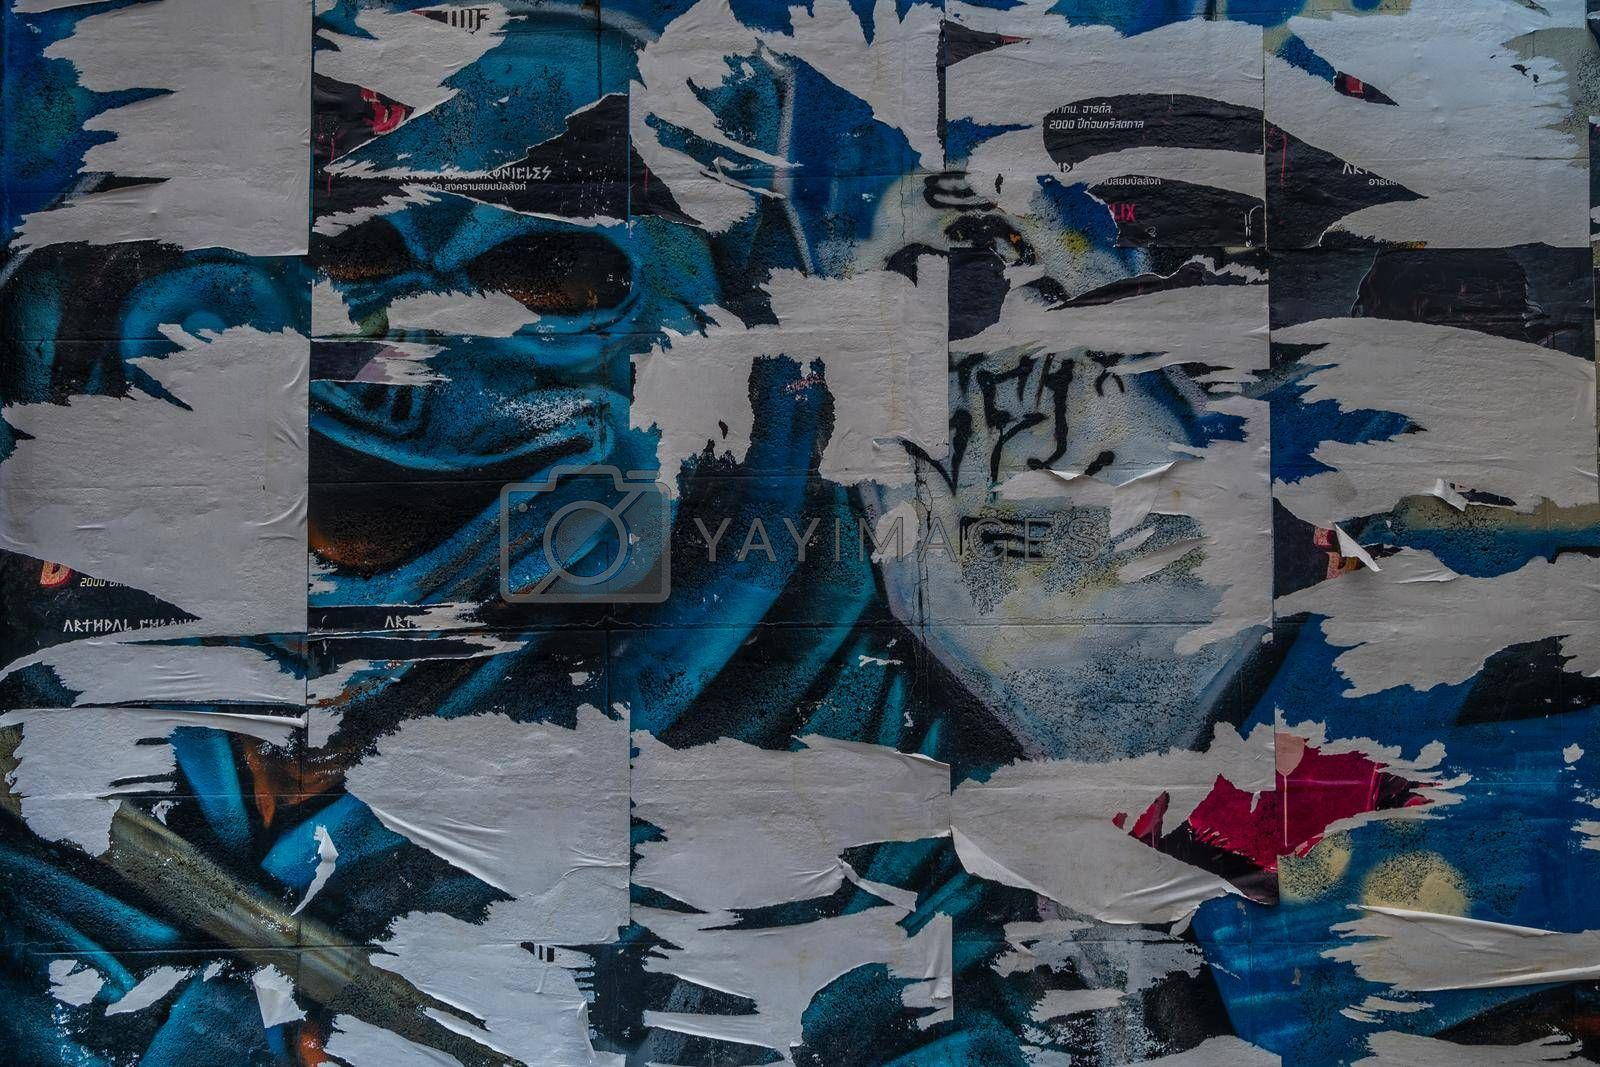 bangkok,Thailand - jun 29, 2019 : Old Urban Street Billboard With Torn Posters And Stickers, Background Or Texture With Copy Space, Toned Image.